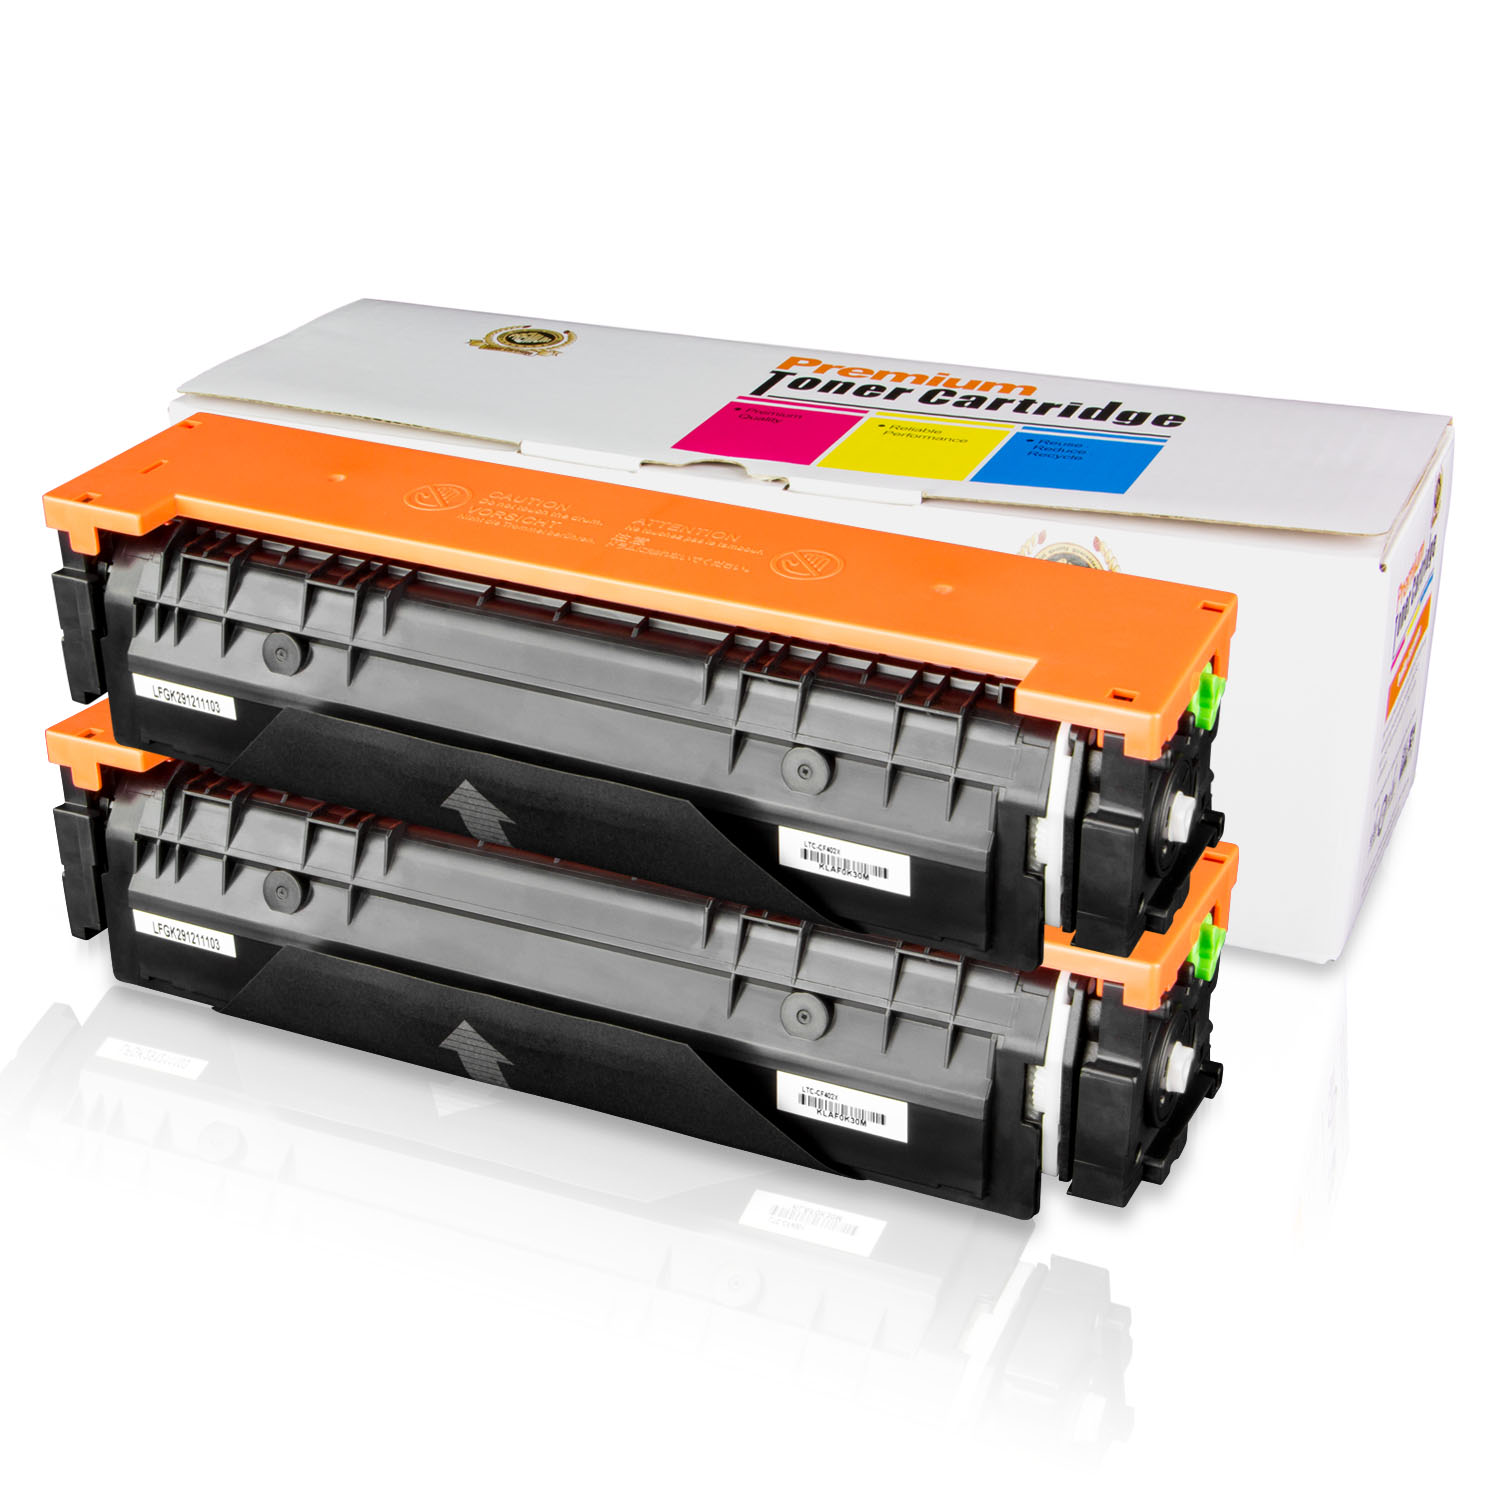 2PK of ALLINKTONER HP Compatible 201X CF402X Yellow LaserJet Toner  Cartridge for HP Color LaserJet M252dw MFP M277dw LaserJet Pro M252n M277n  Laser